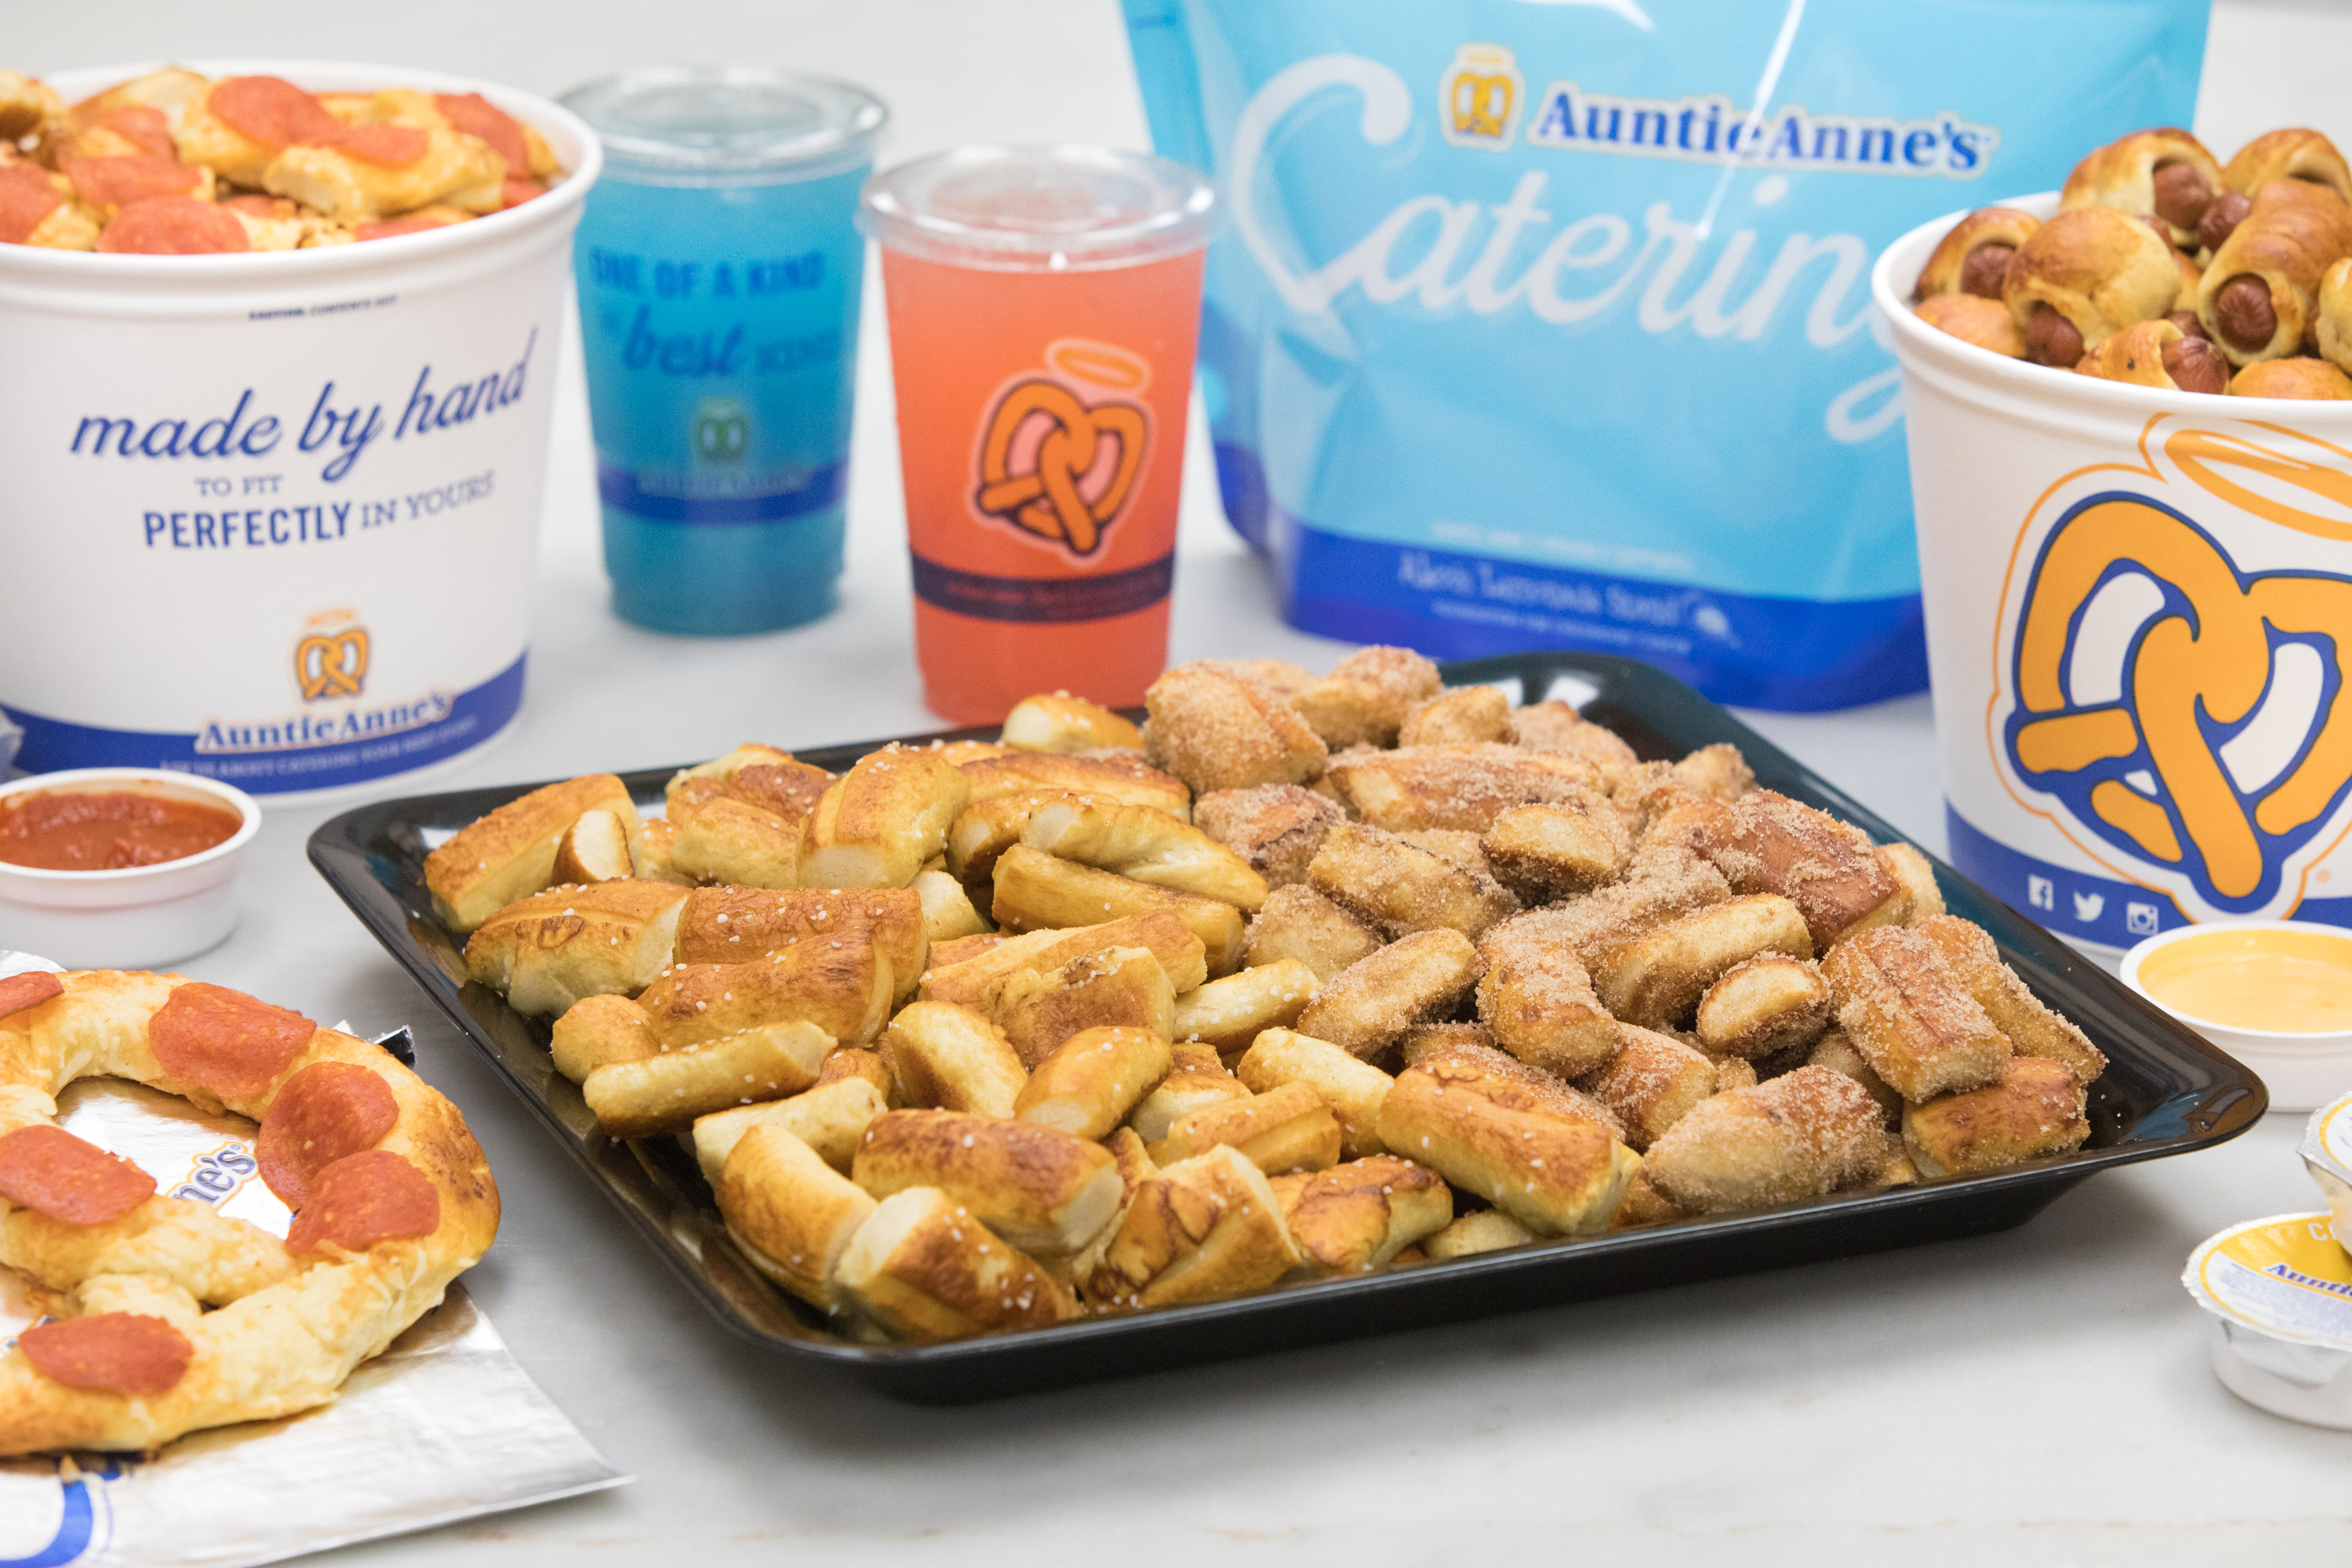 Check out Auntie Anne's catering menu, where you'll find snacks for vegetarians and meat eaters alike.